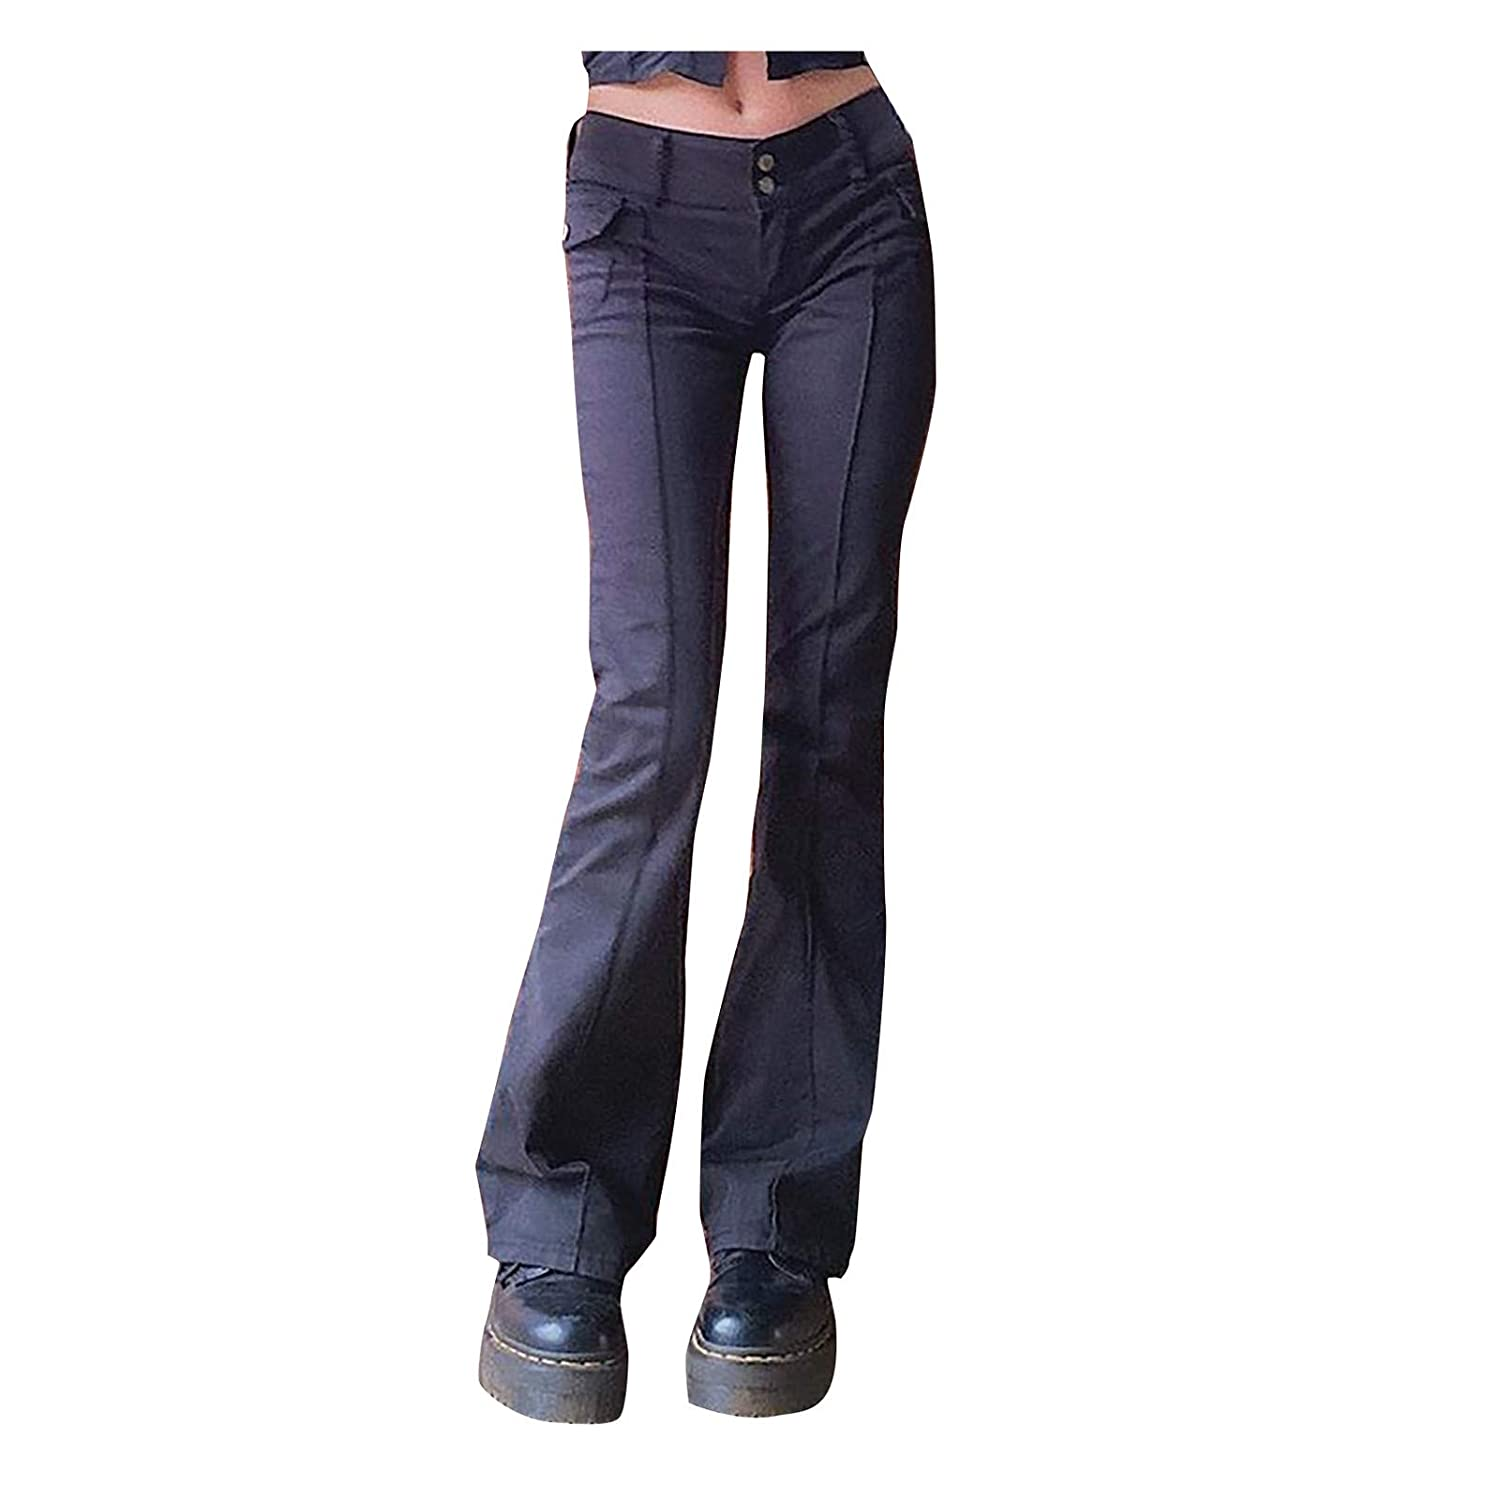 Moonite Women's Retro Black Bell Bottom Jeans Sexy Low-Waist Micro Flare Jeans Trousers Wild Thin Denim Pants Small